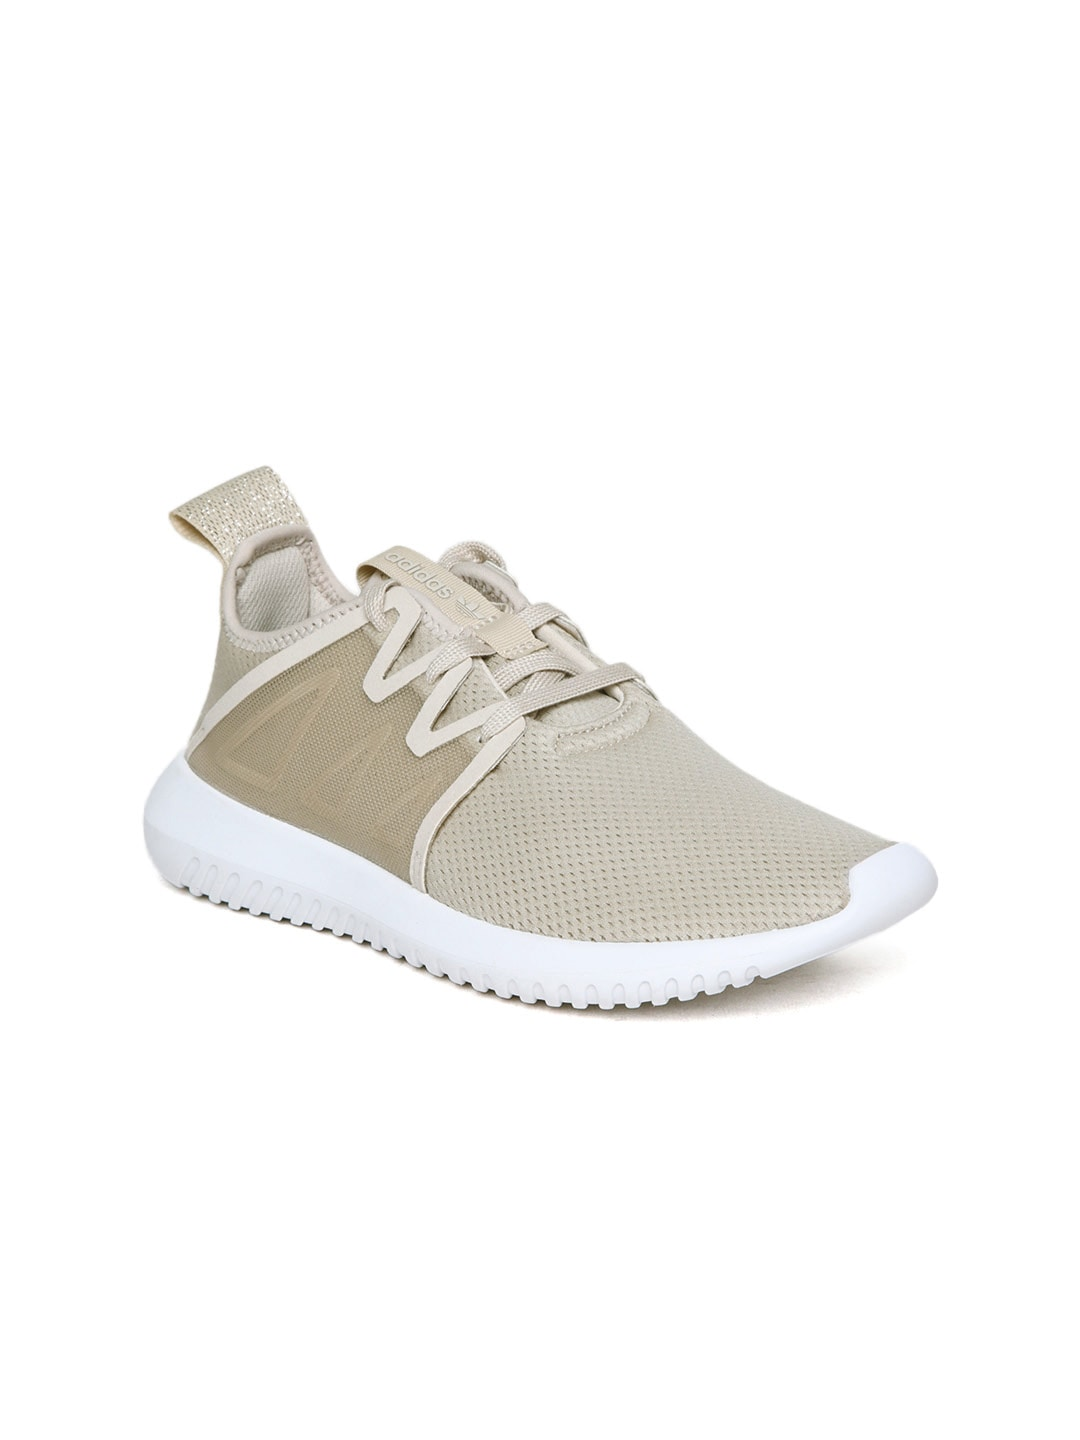 Adidas Originals Women Beige Tubular Viral2 Sneakers image